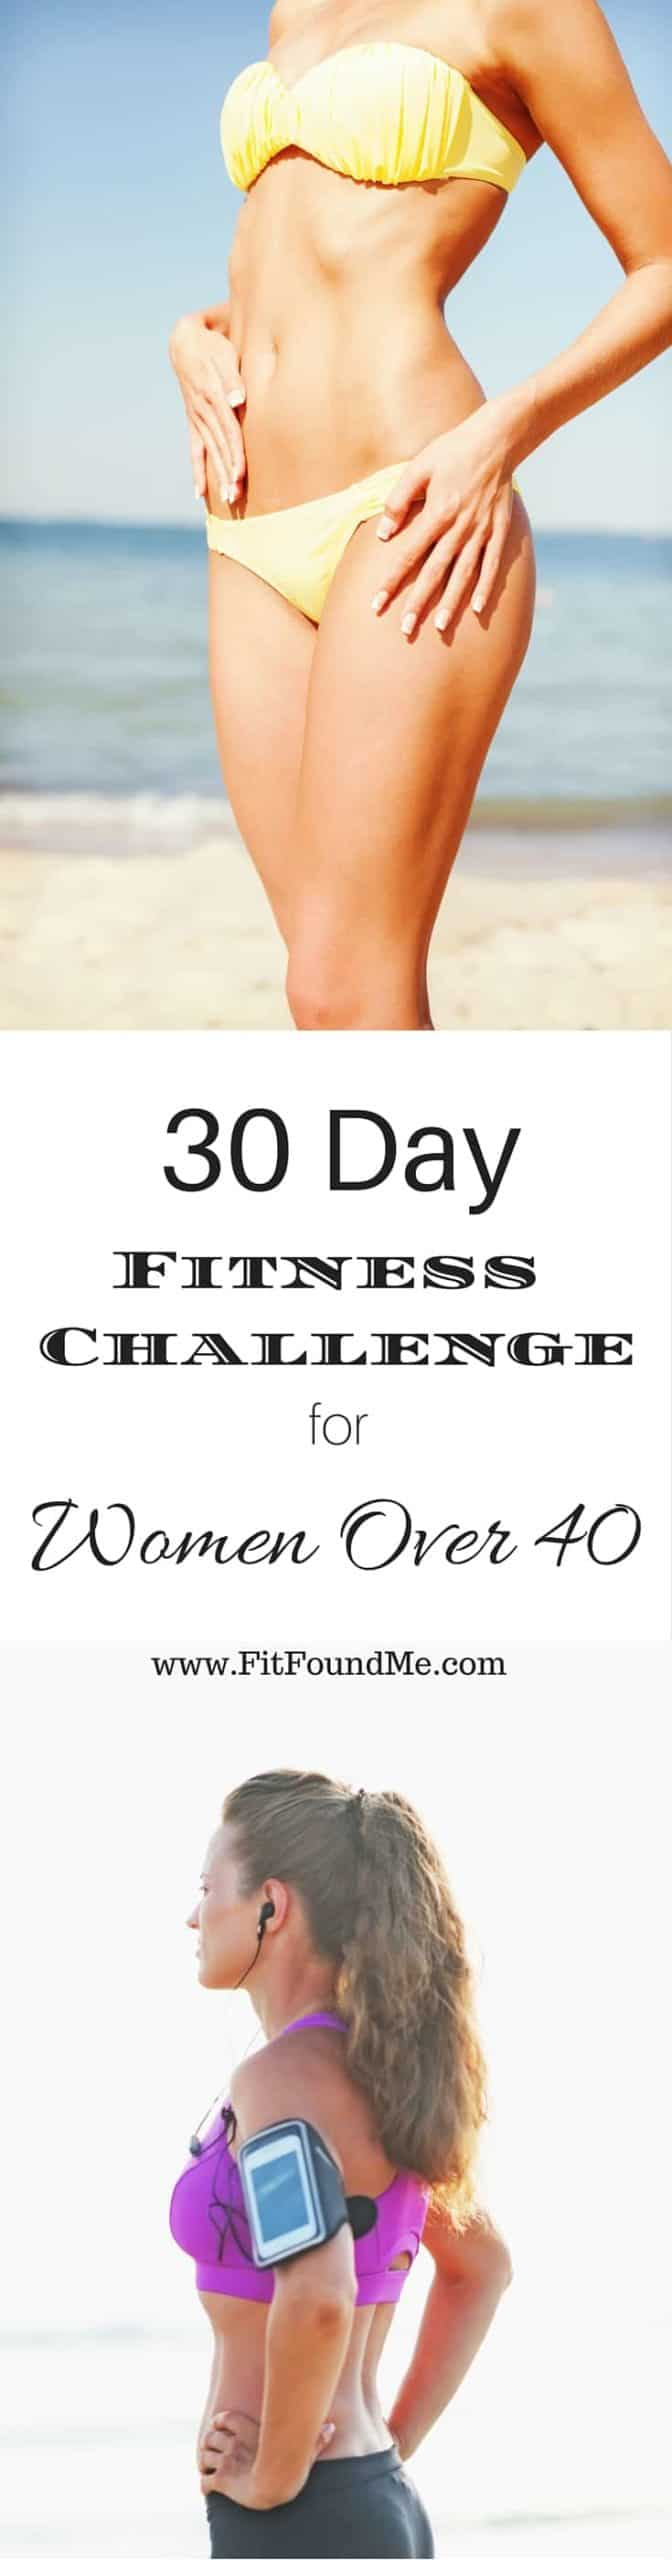 lady on beach in swimsuit after 30 day fitness challenge for women over 40